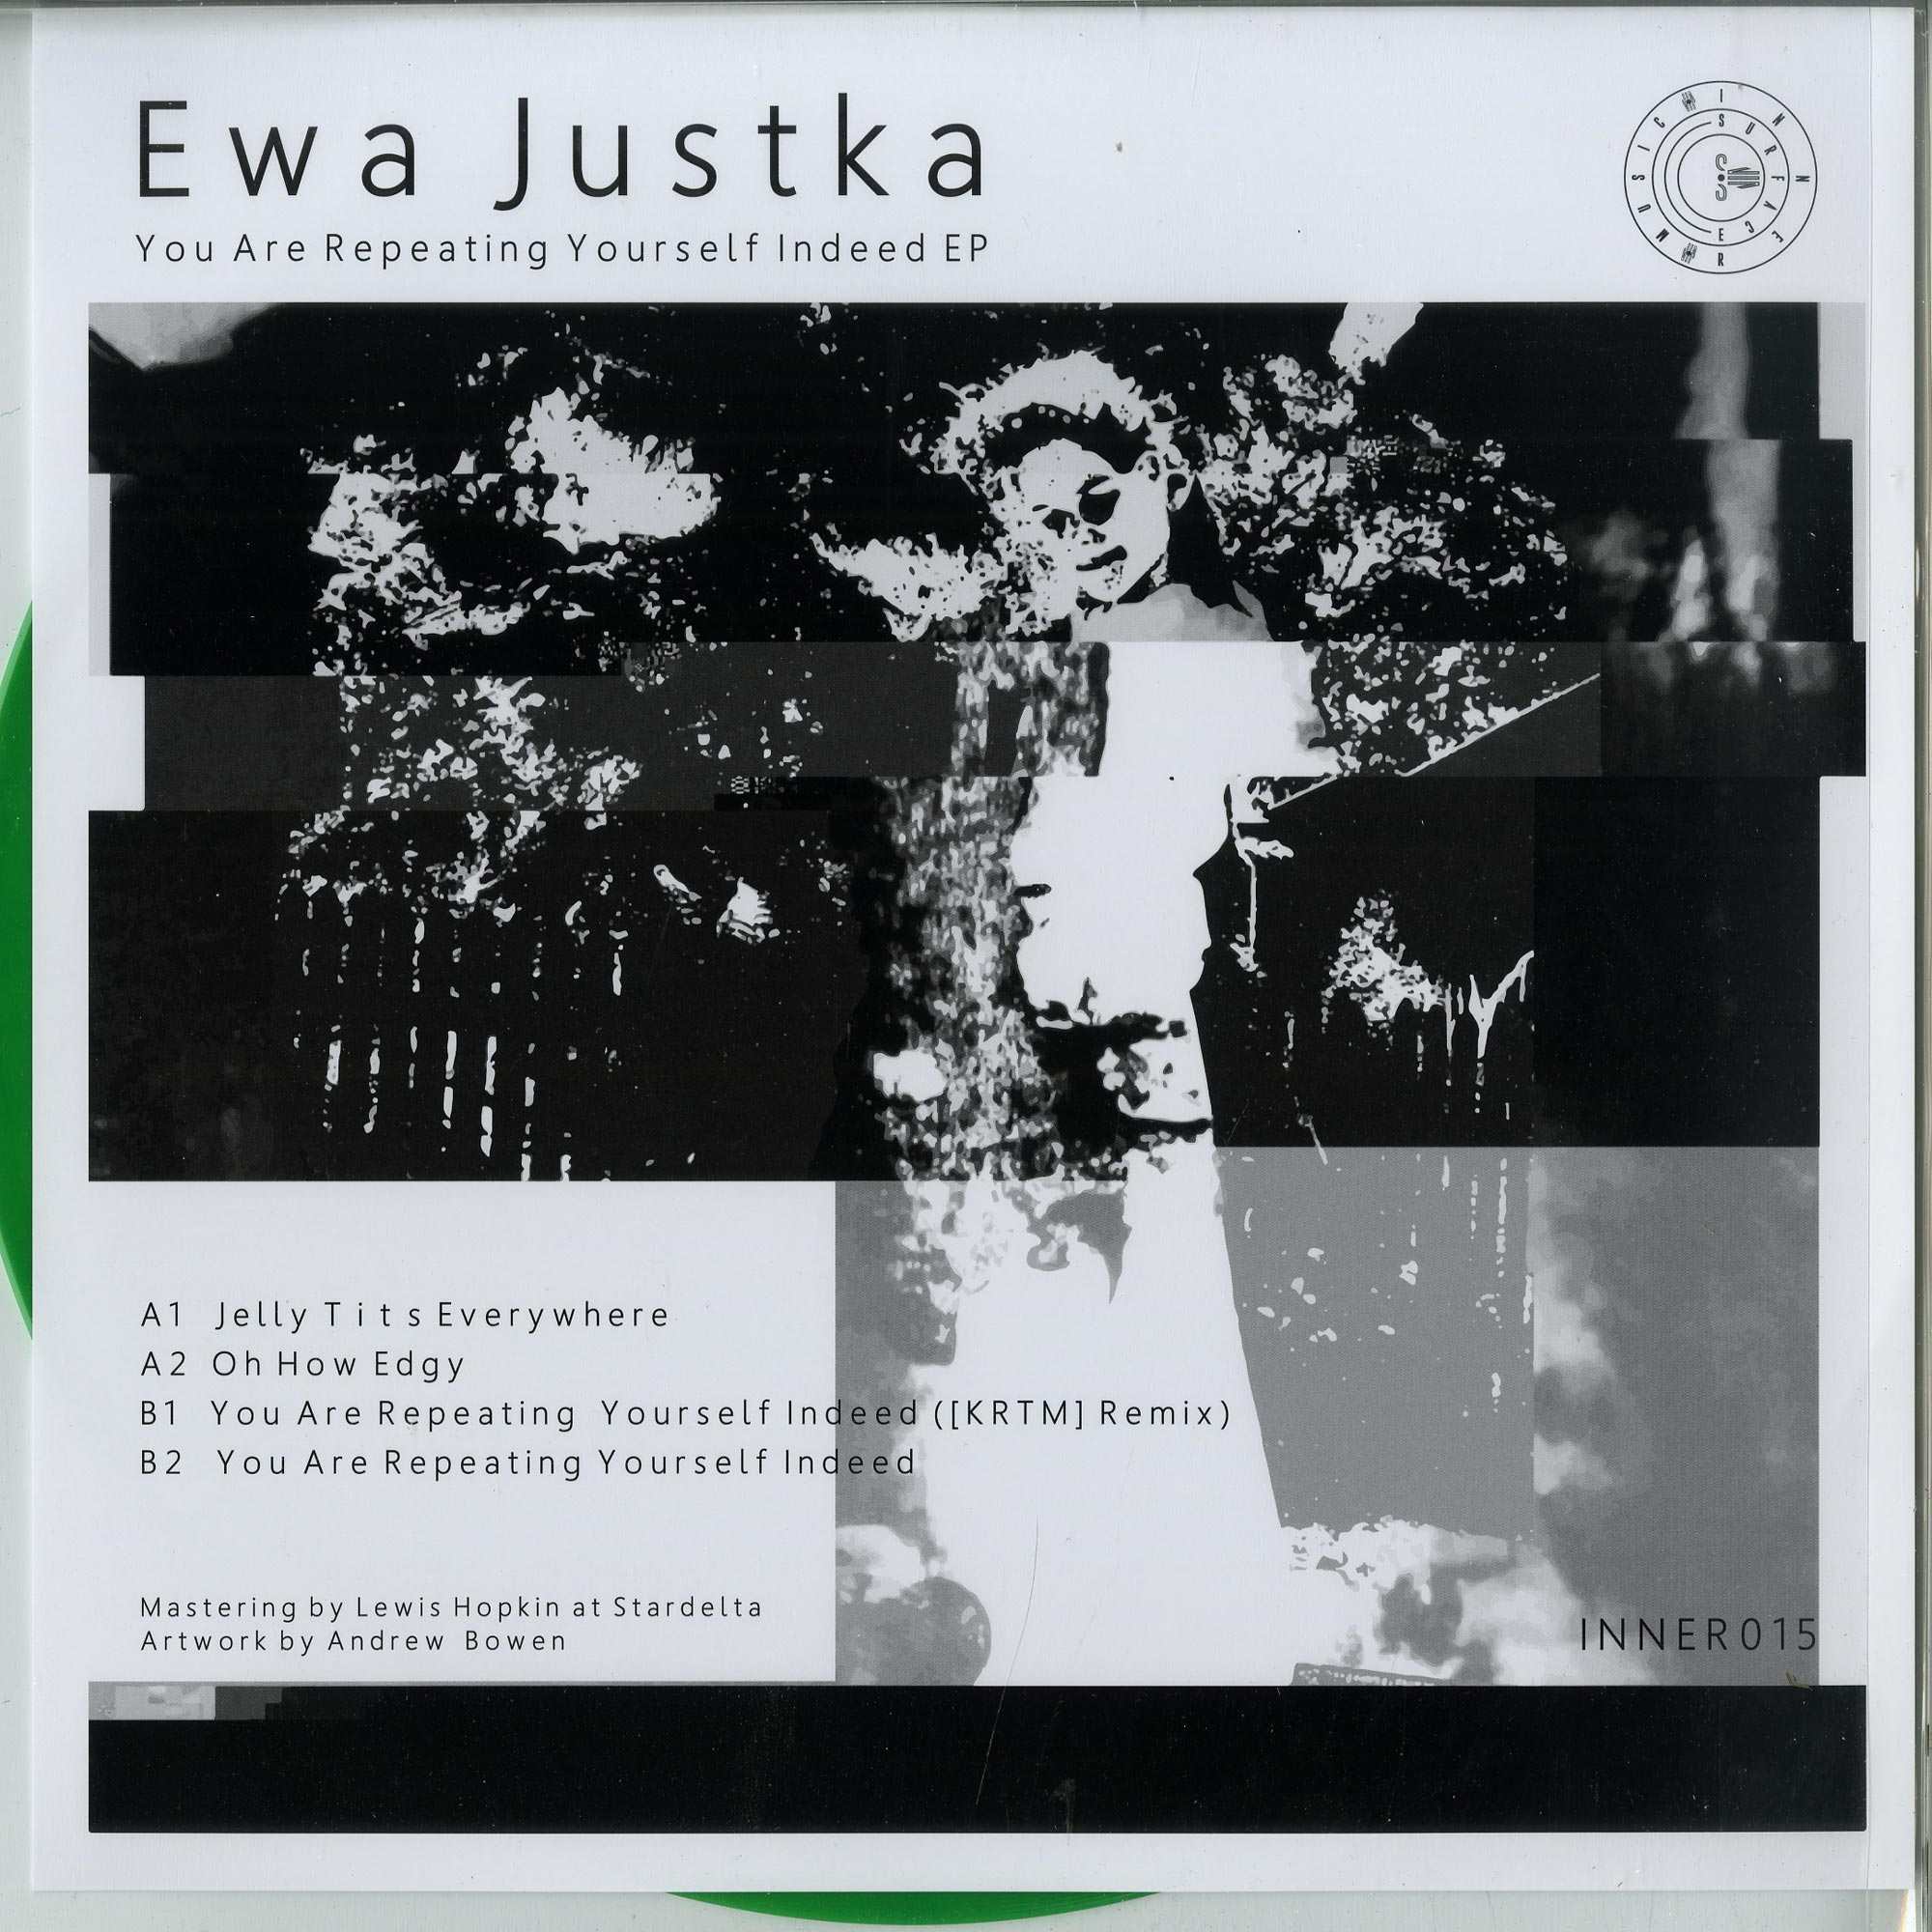 Ewa Justka - YOU ARE REPEATING YOURSELF INDEED EP